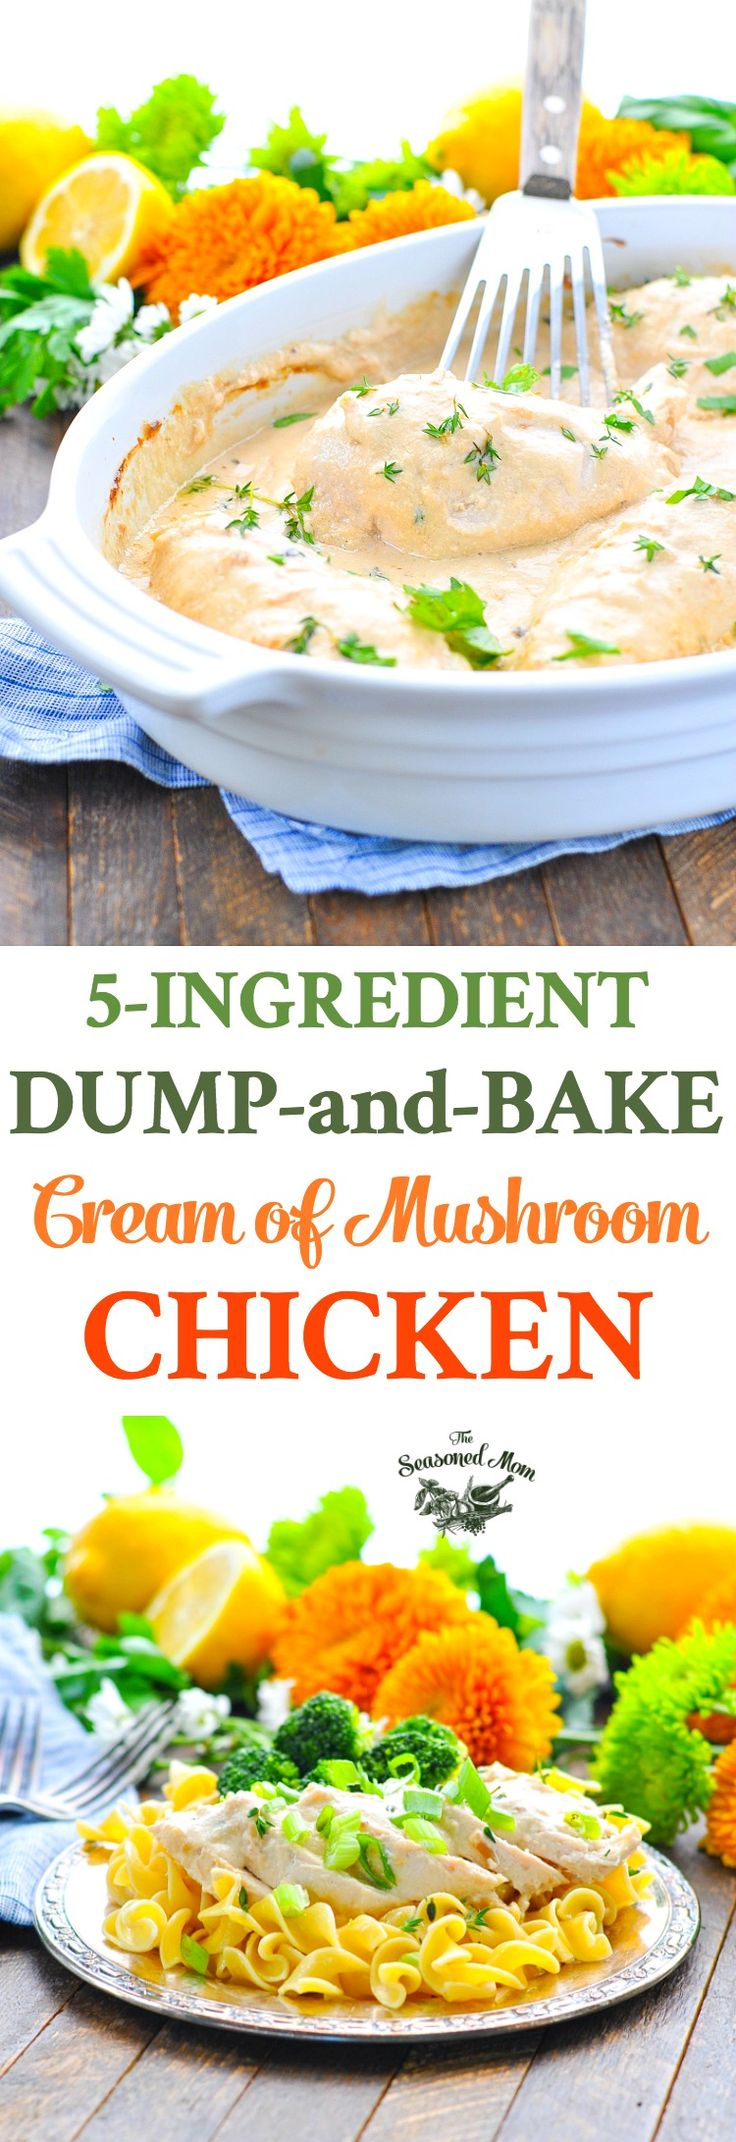 With just 5 minutes of prep and 5 ingredients, this Dump-and-Bake Cream of Mushroom Chicken is an easy dinner recipe for busy nights! Chicken Breast Recipes | Chicken Recipes | Dinner Ideas #chicken #chickenbreast #dinner